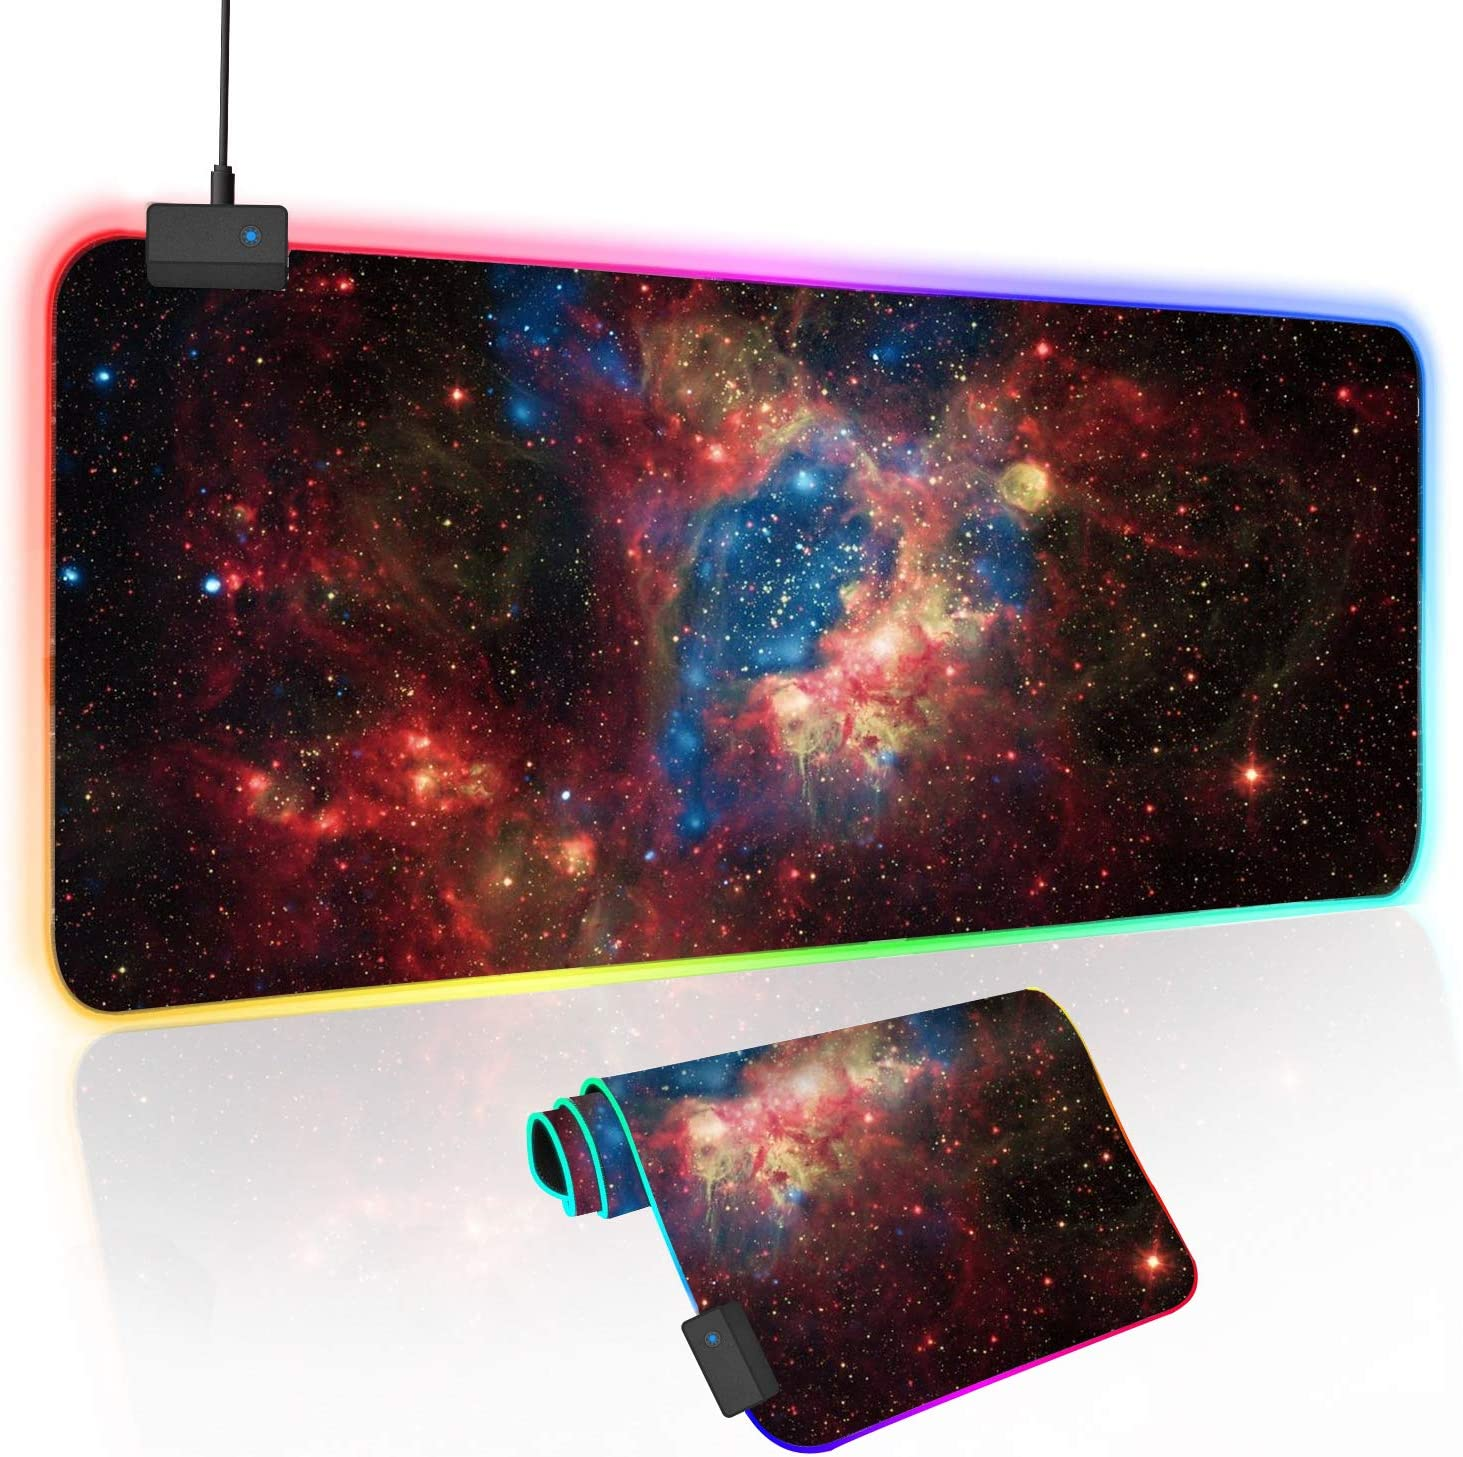 O'woda RGB Gaming Mouse Mat 31.5 x 12 0.2 Super popular specialty store Mous Popular LED inch Large